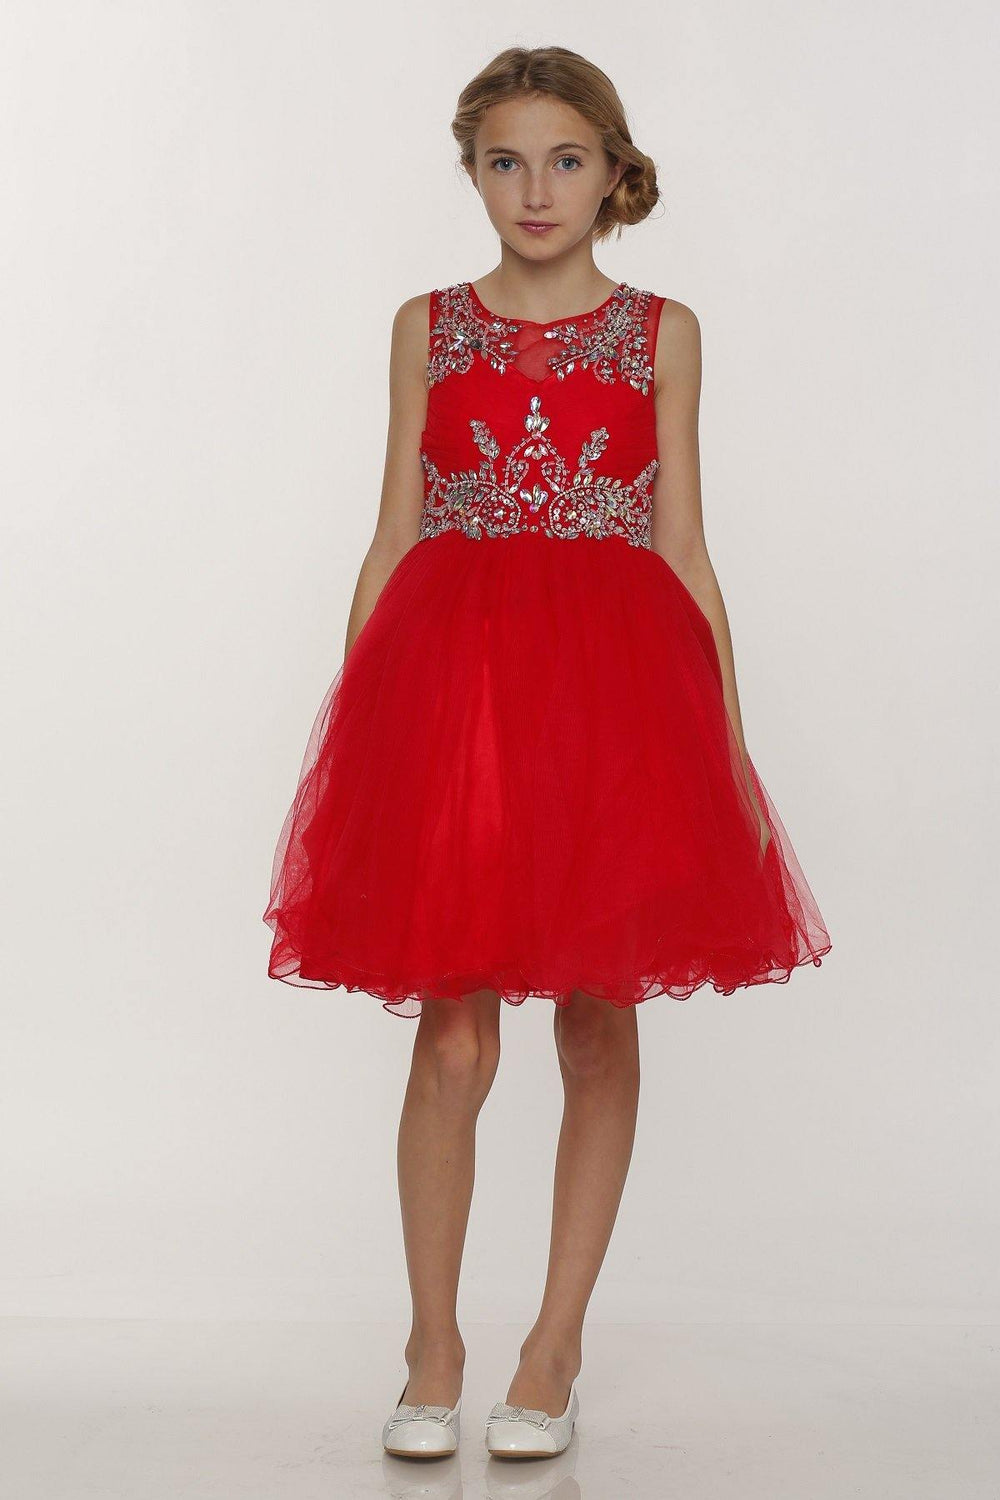 Sleeveless Flower Girl Dress with Rhinestone Bodice - The Dress Outlet Red